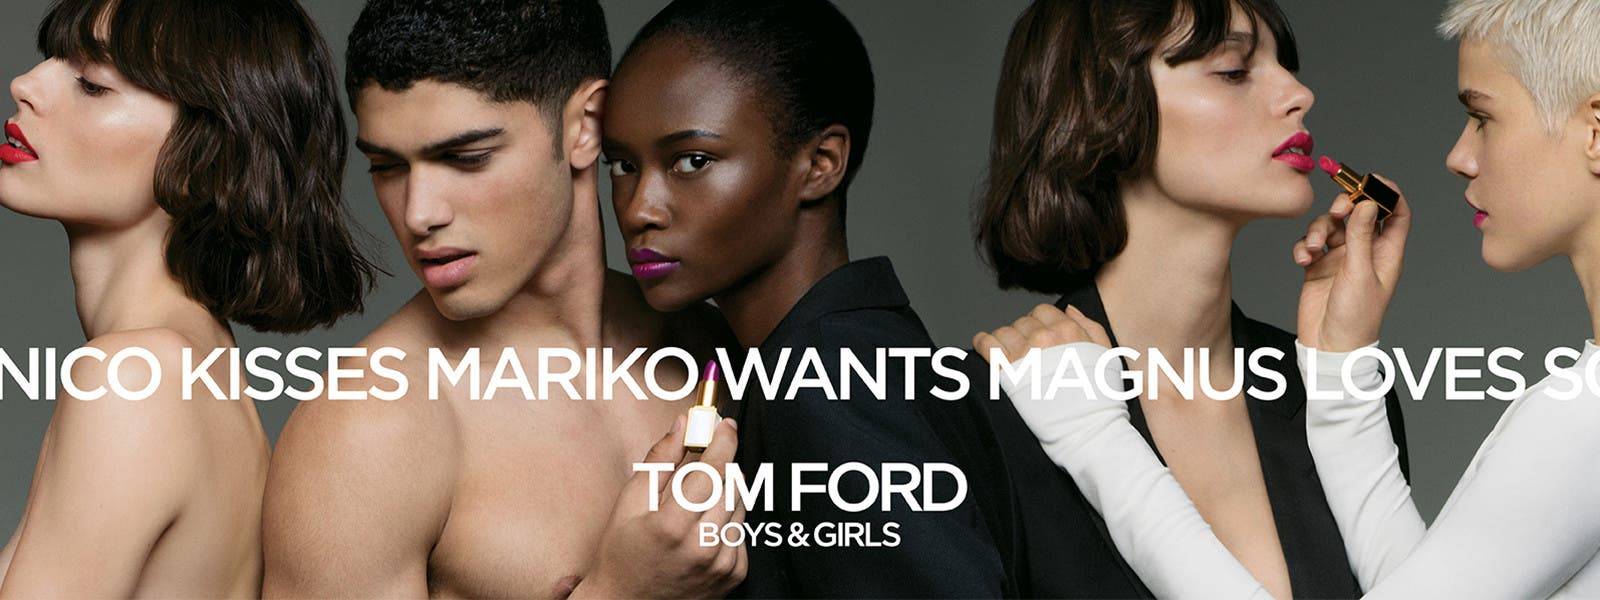 Boys & Girls - new from Tom Ford.